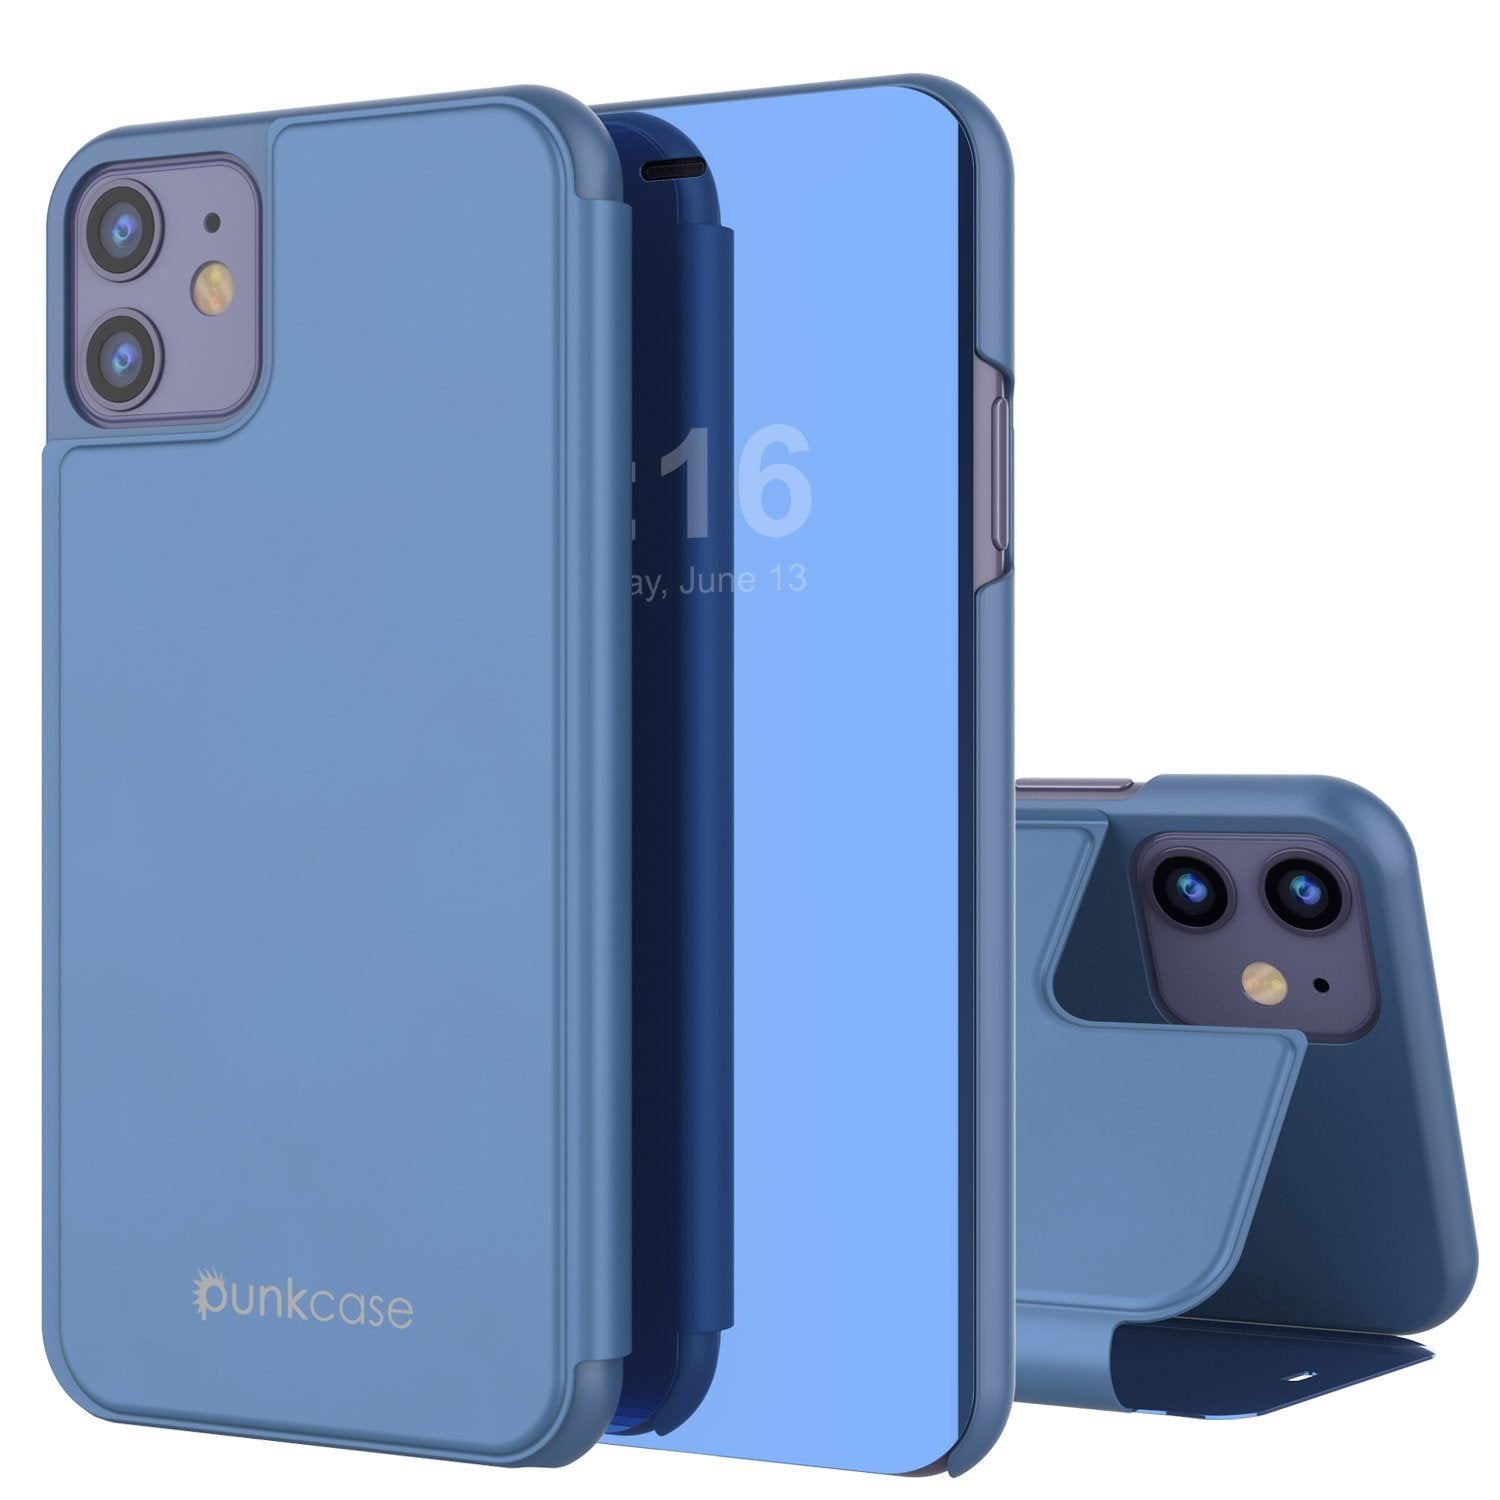 Punkcase iPhone 11 Pro Reflector Case Protective Flip Cover [Blue]